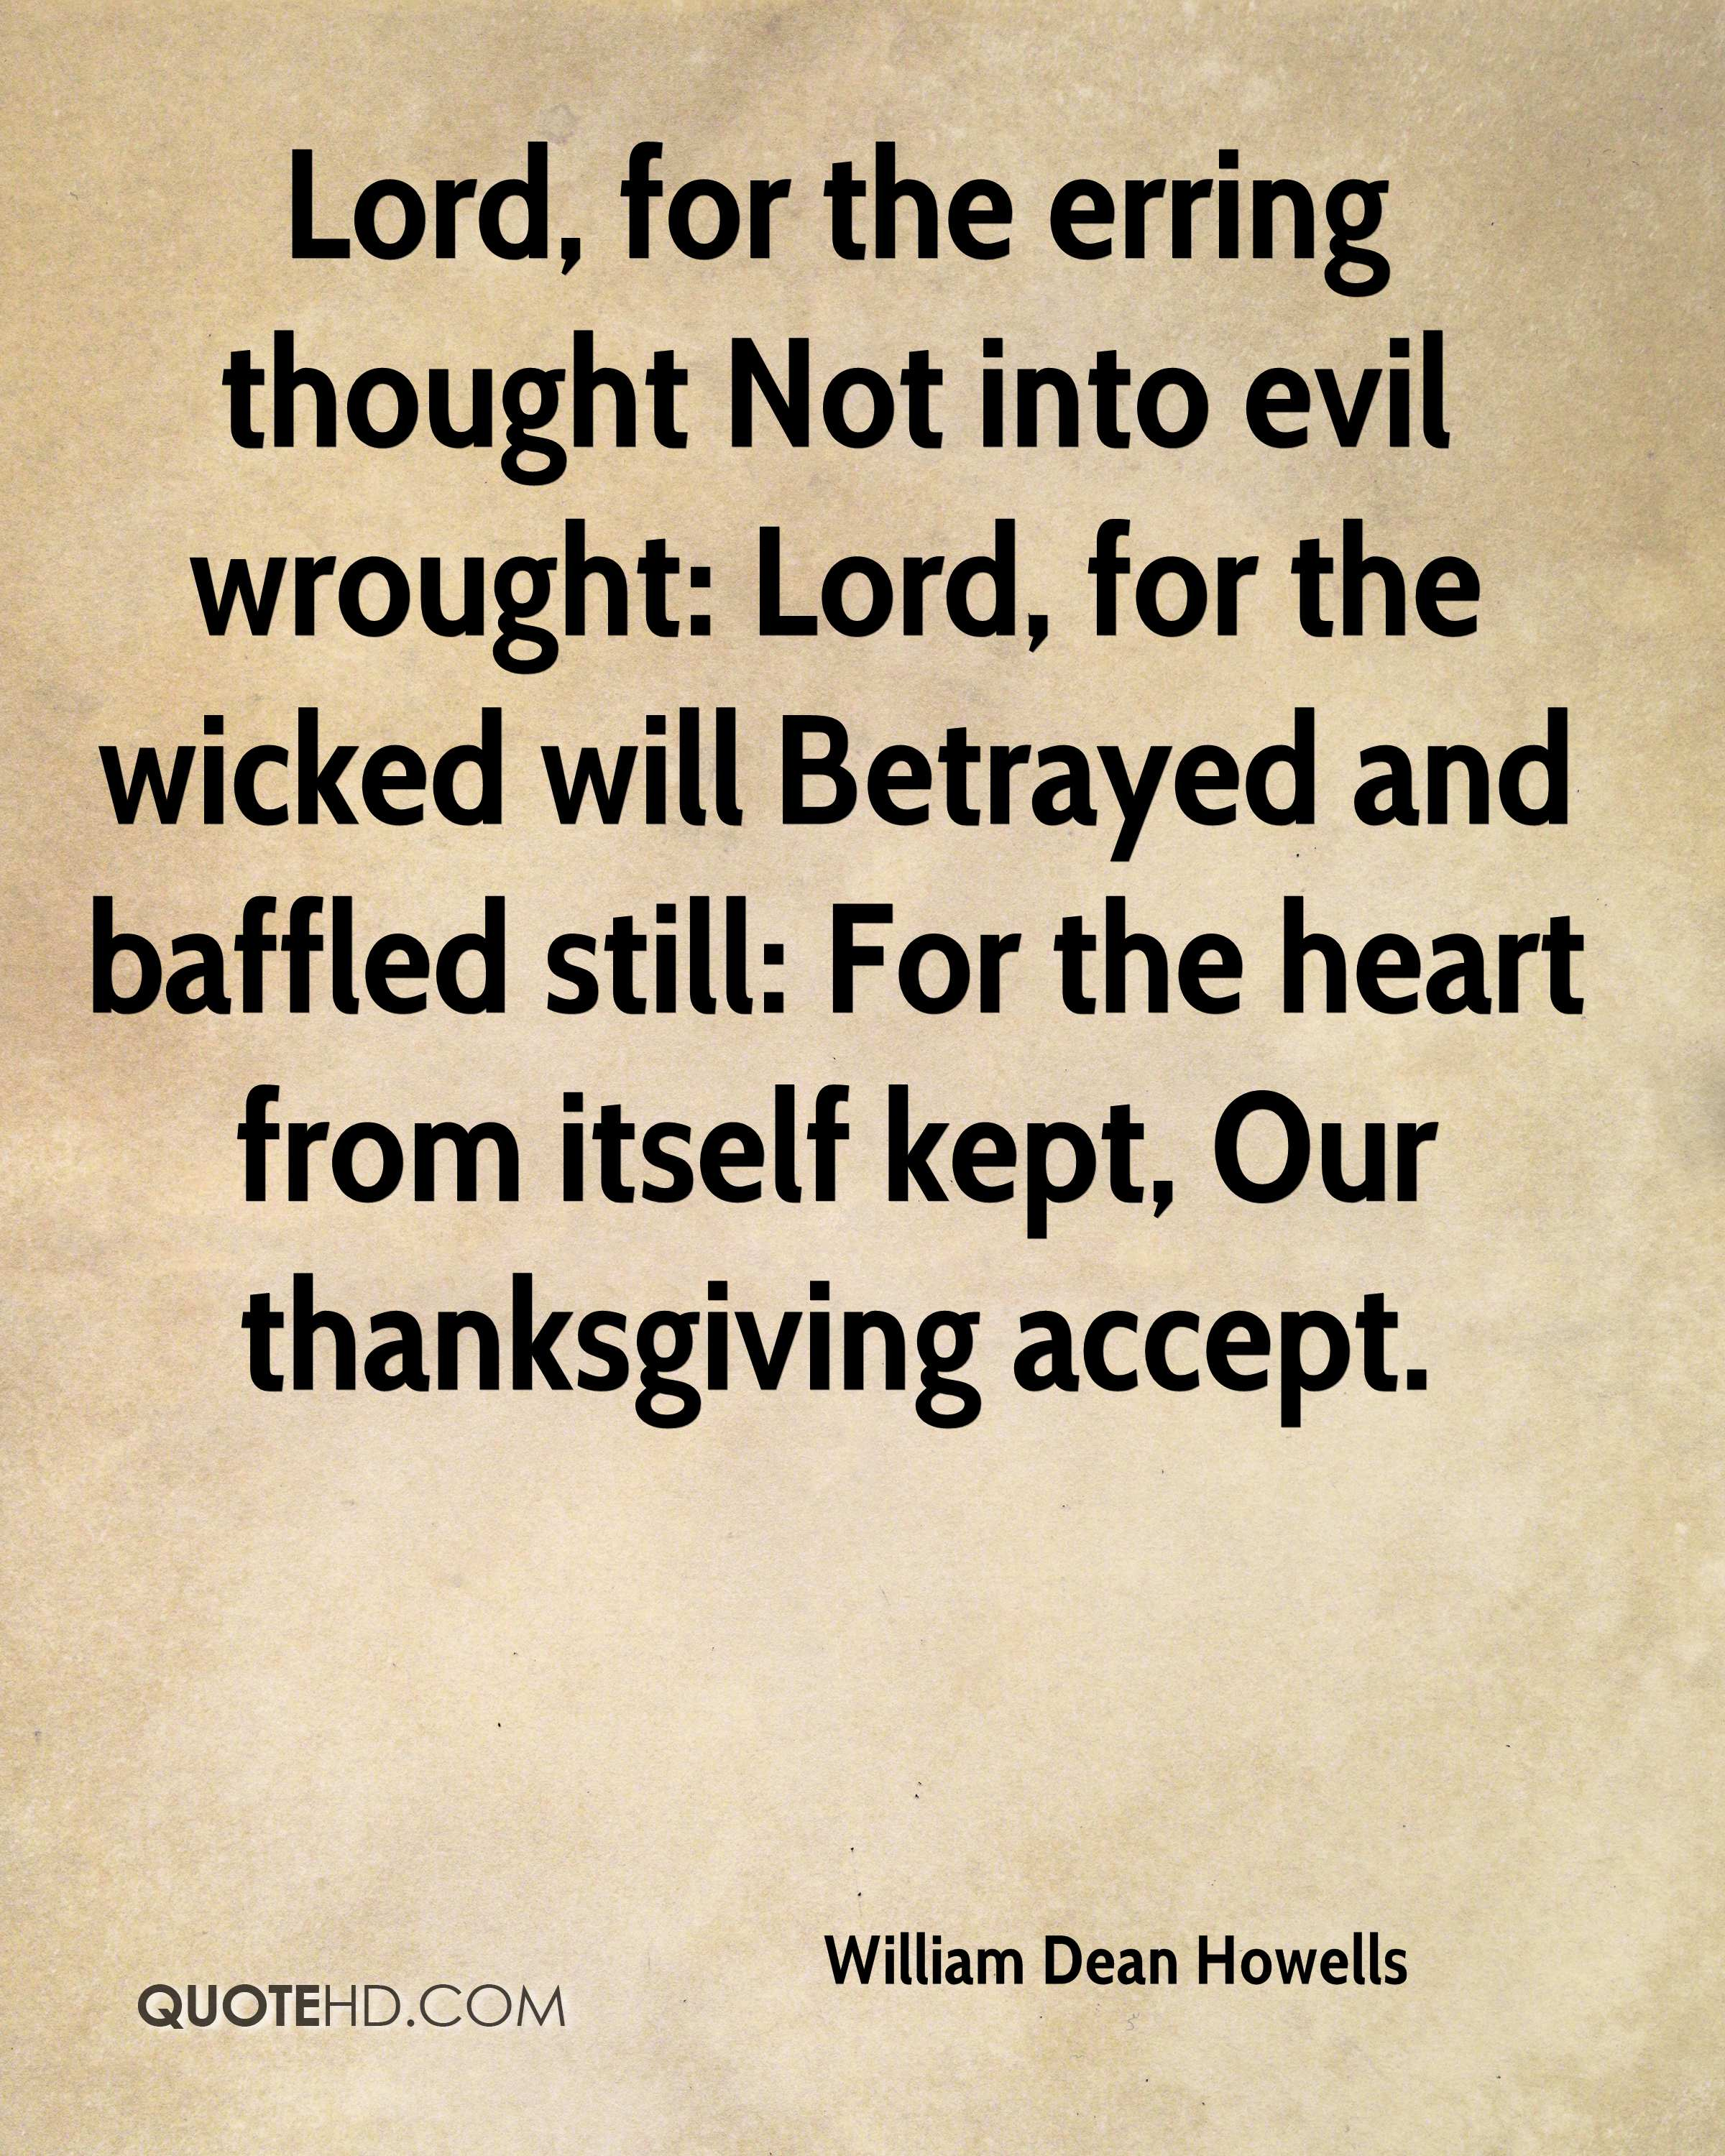 Lord, for the erring thought Not into evil wrought: Lord, for the wicked will Betrayed and baffled still: For the heart from itself kept, Our thanksgiving accept.